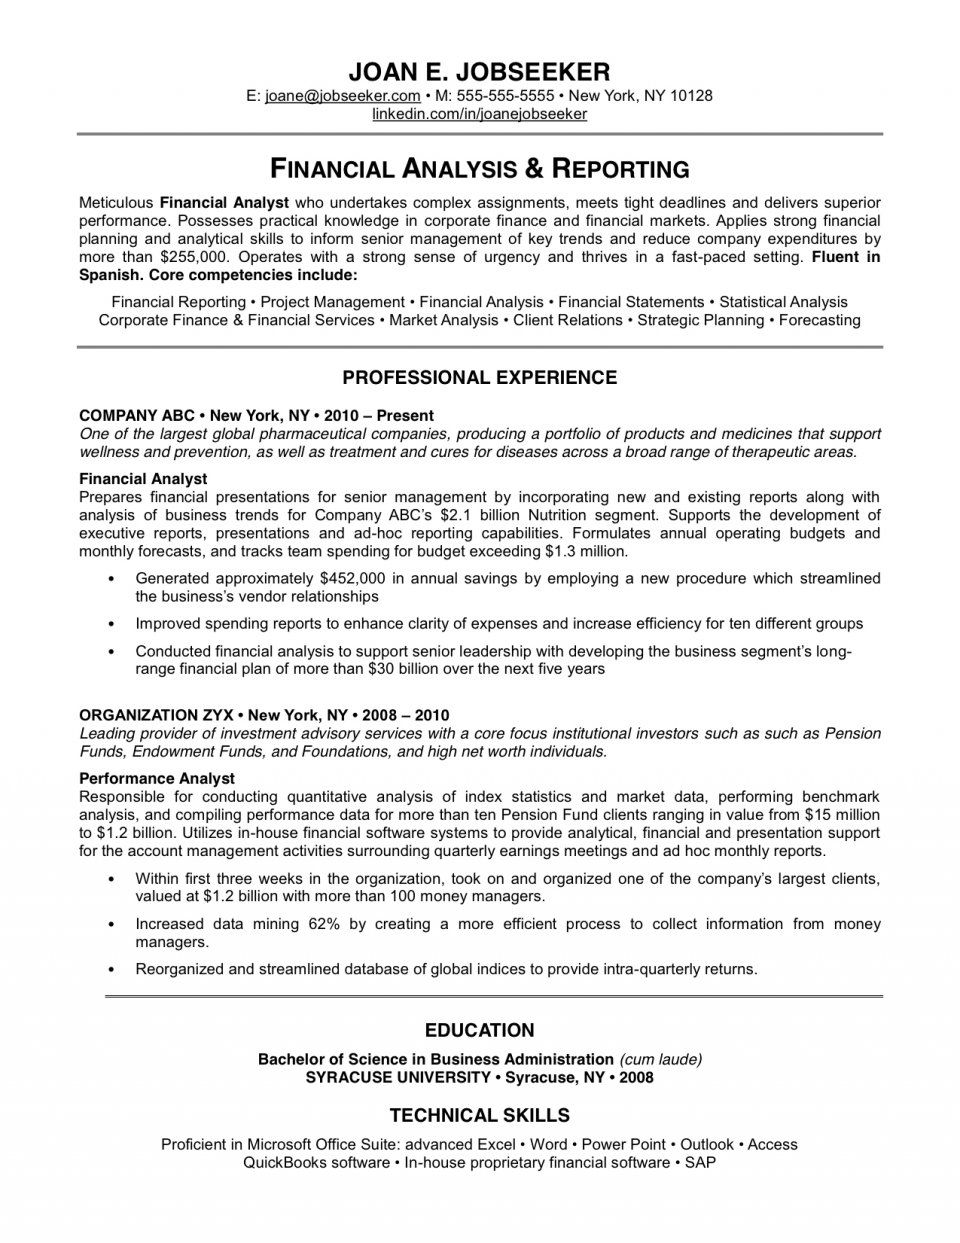 Best Resume Writing Software Prepossessing 17 Things That Make This The Perfect Résumé  Pinterest  Job Resume .